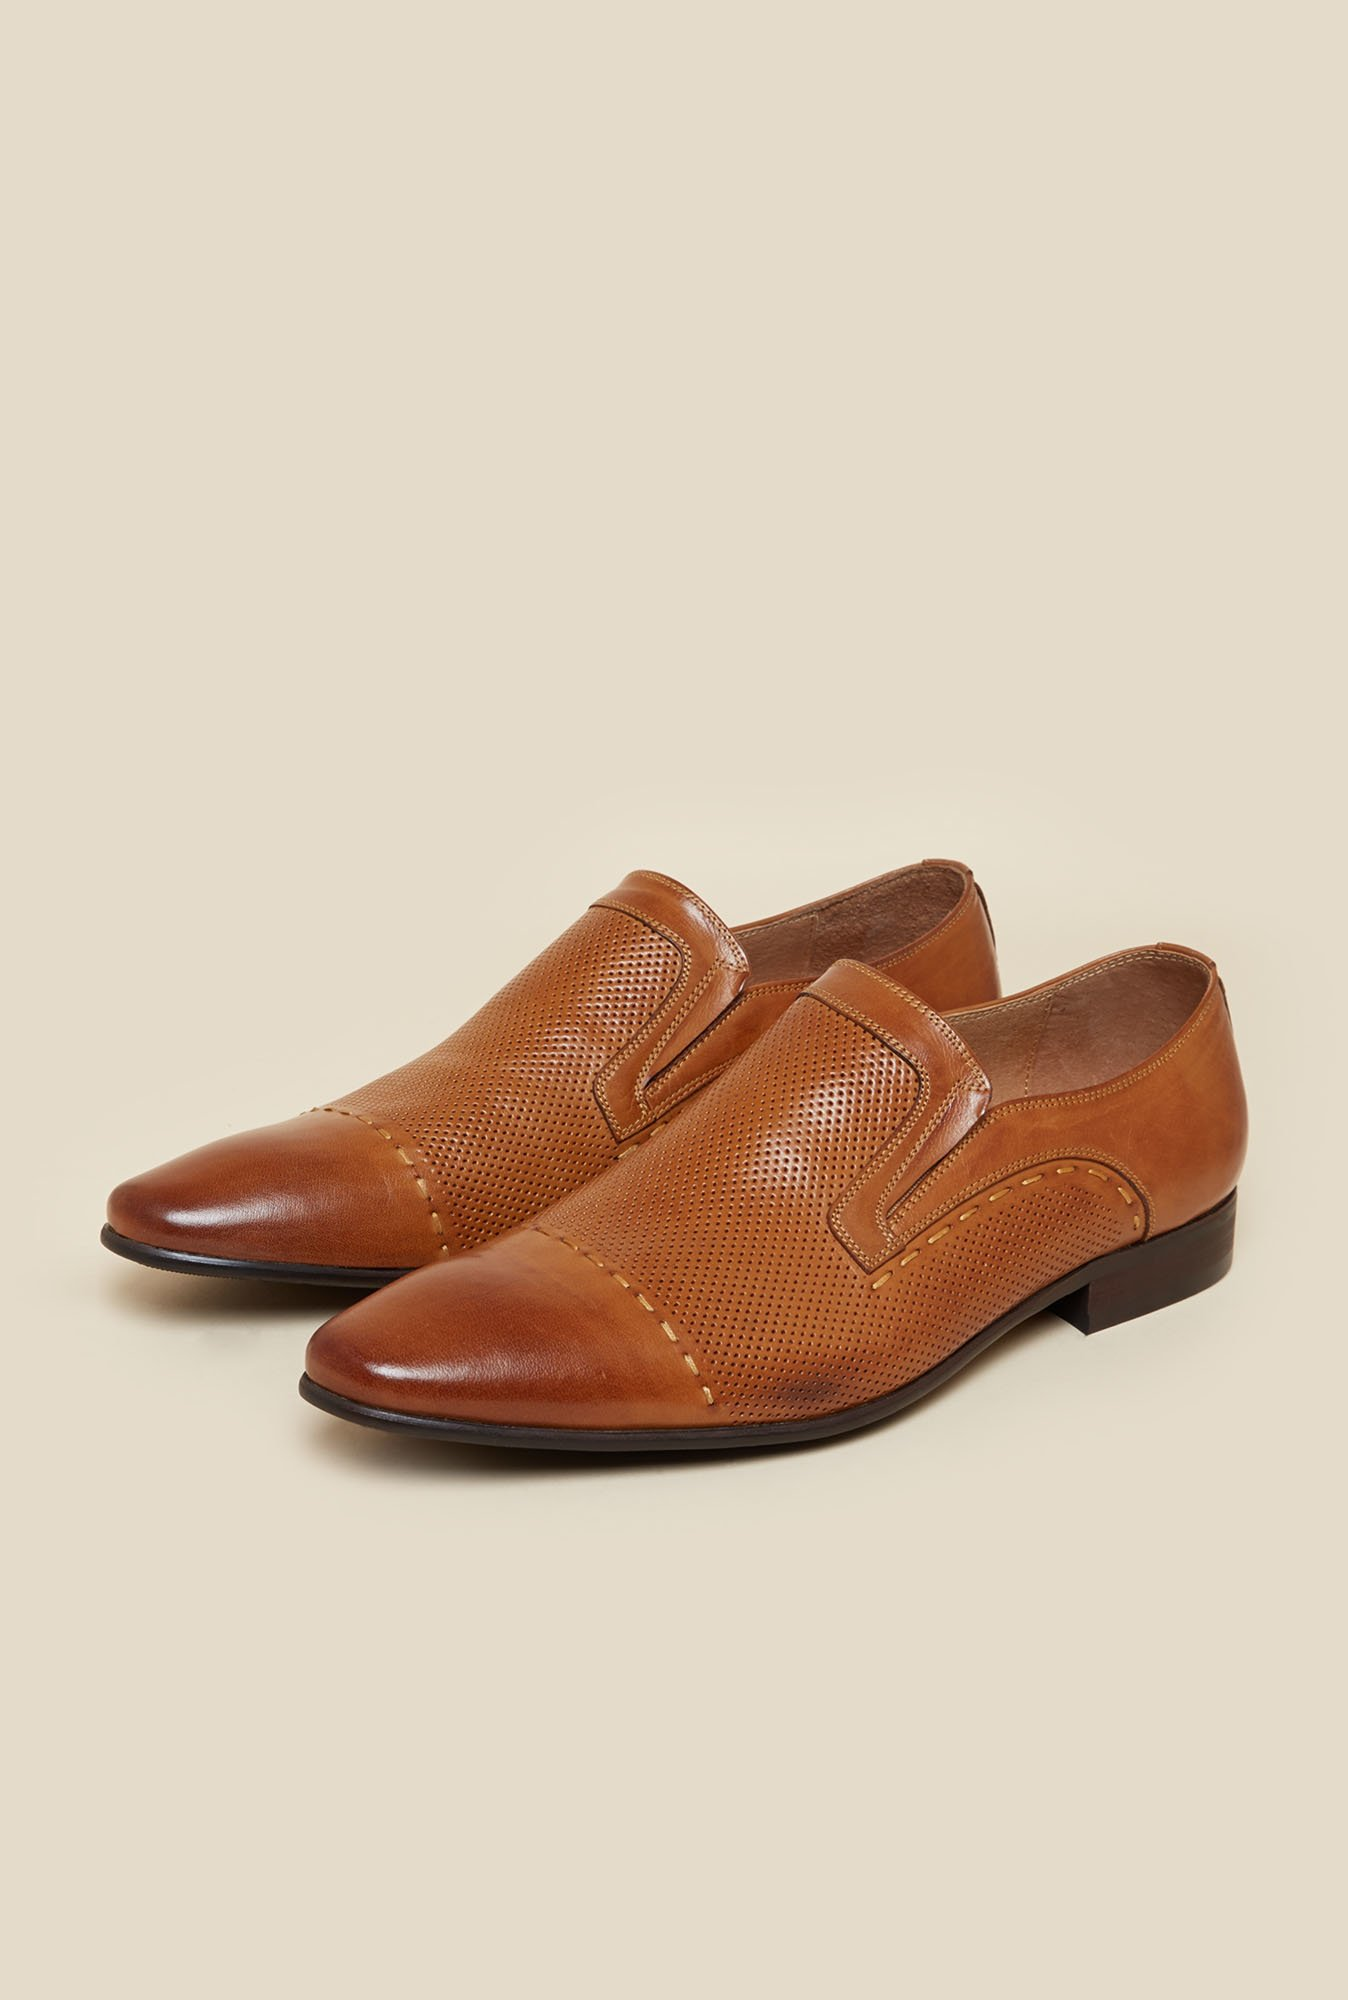 J. Fontini by Mochi Tan Formal Slip-Ons